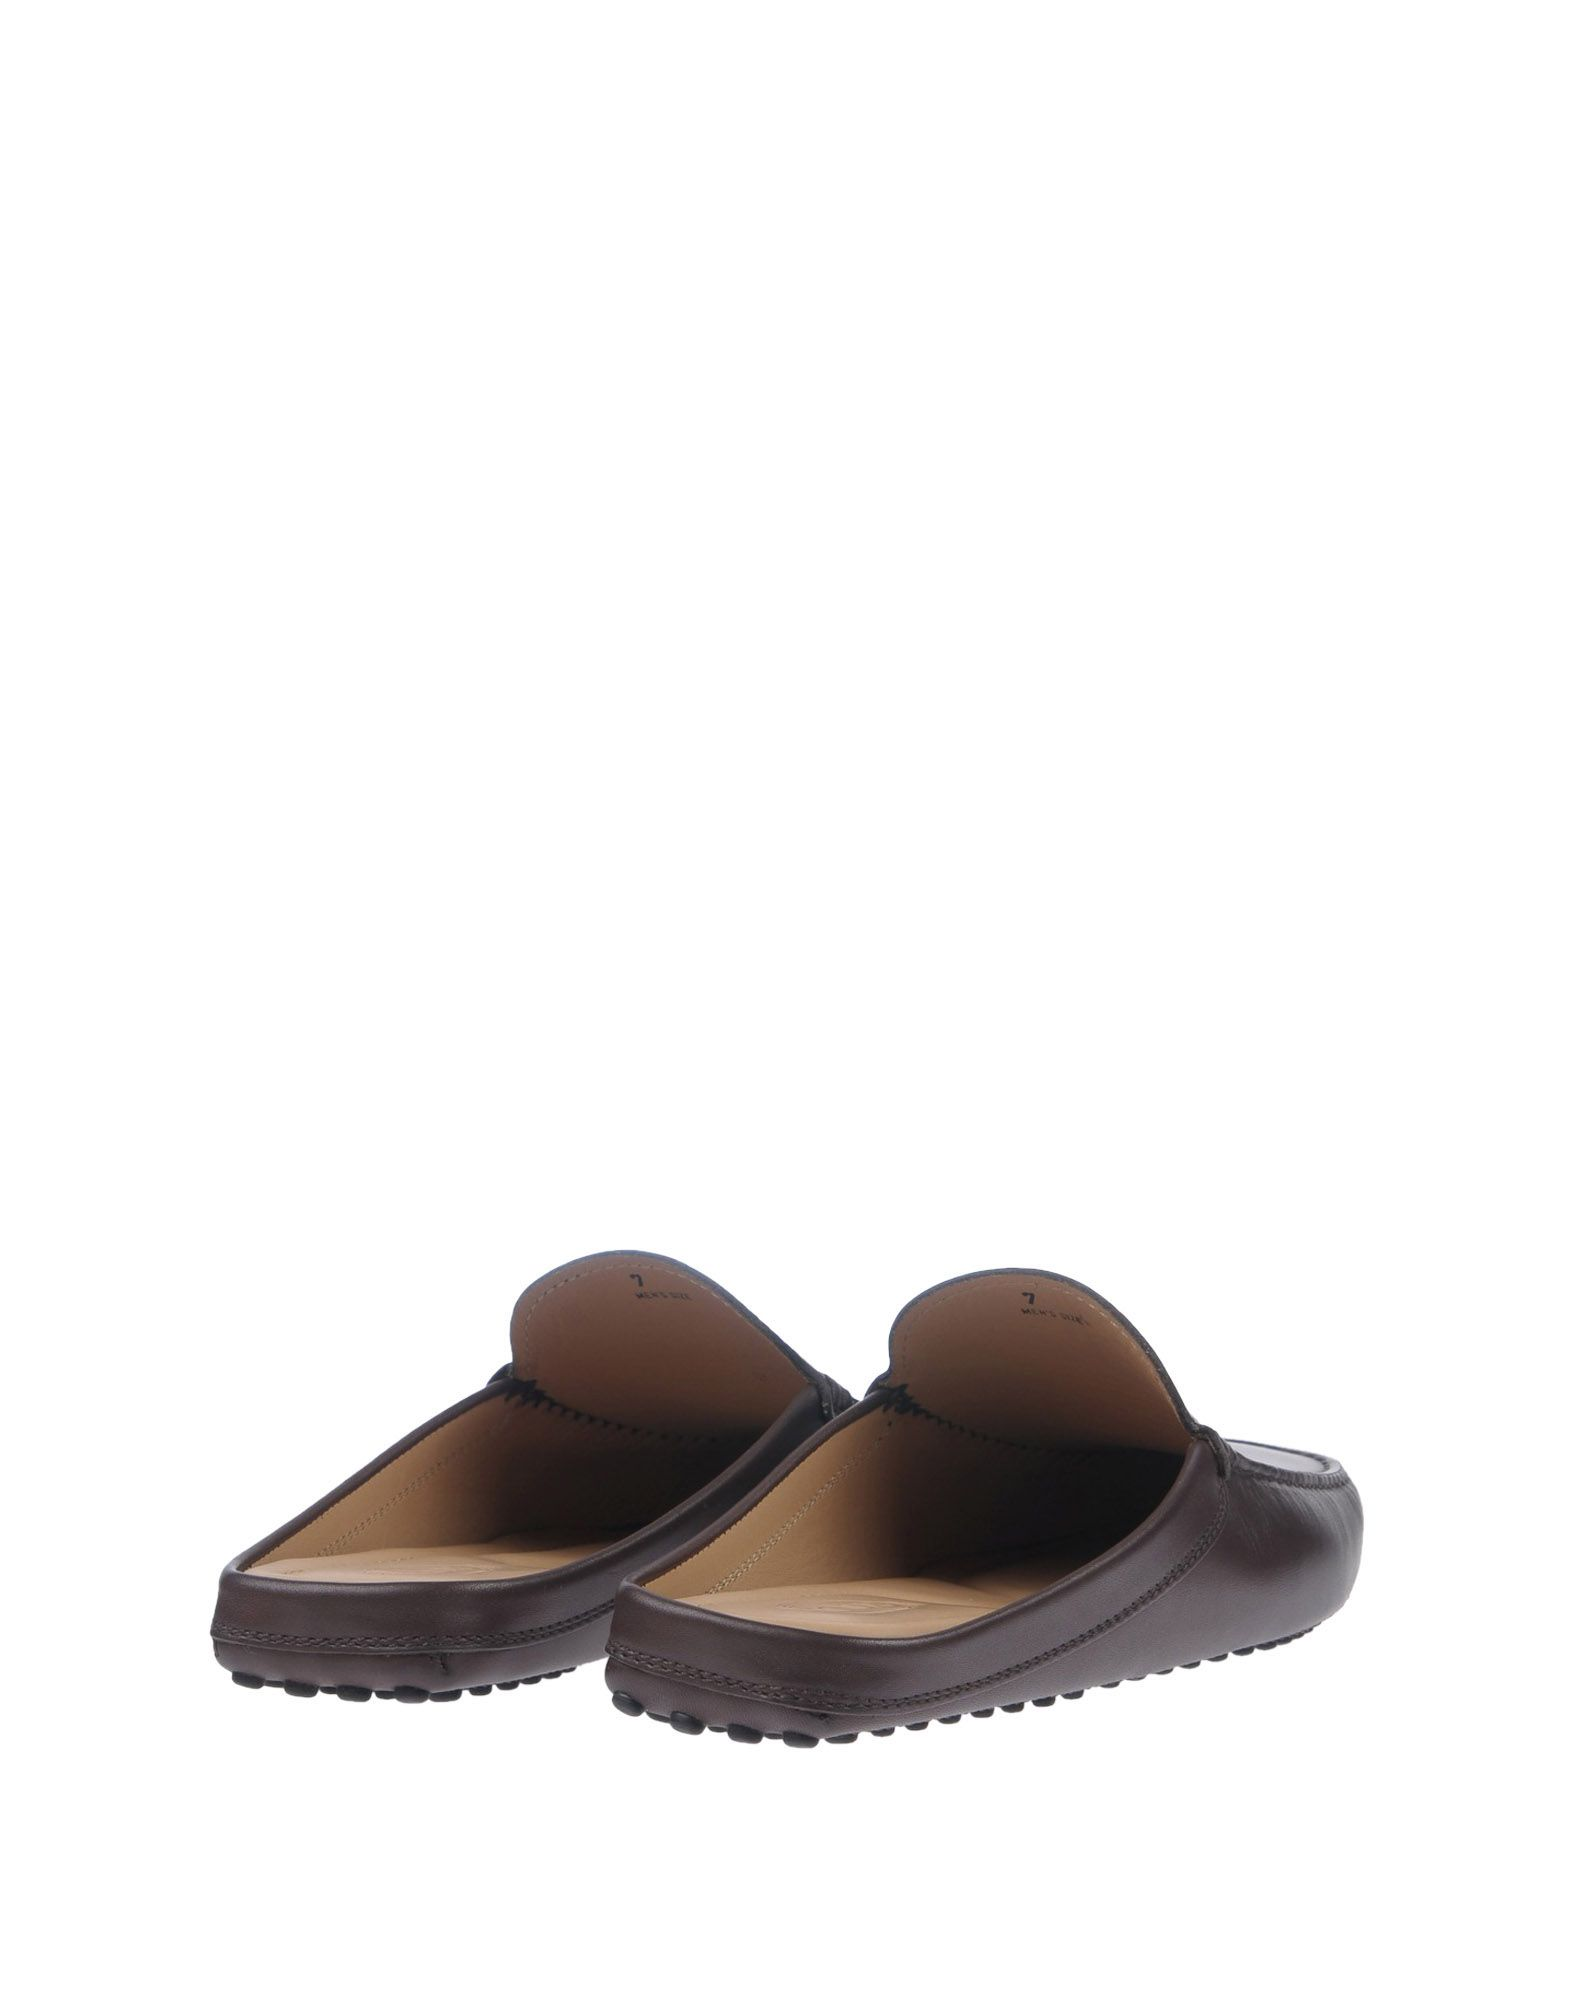 Chaussons Tods Homme - Chaussons Tods sur